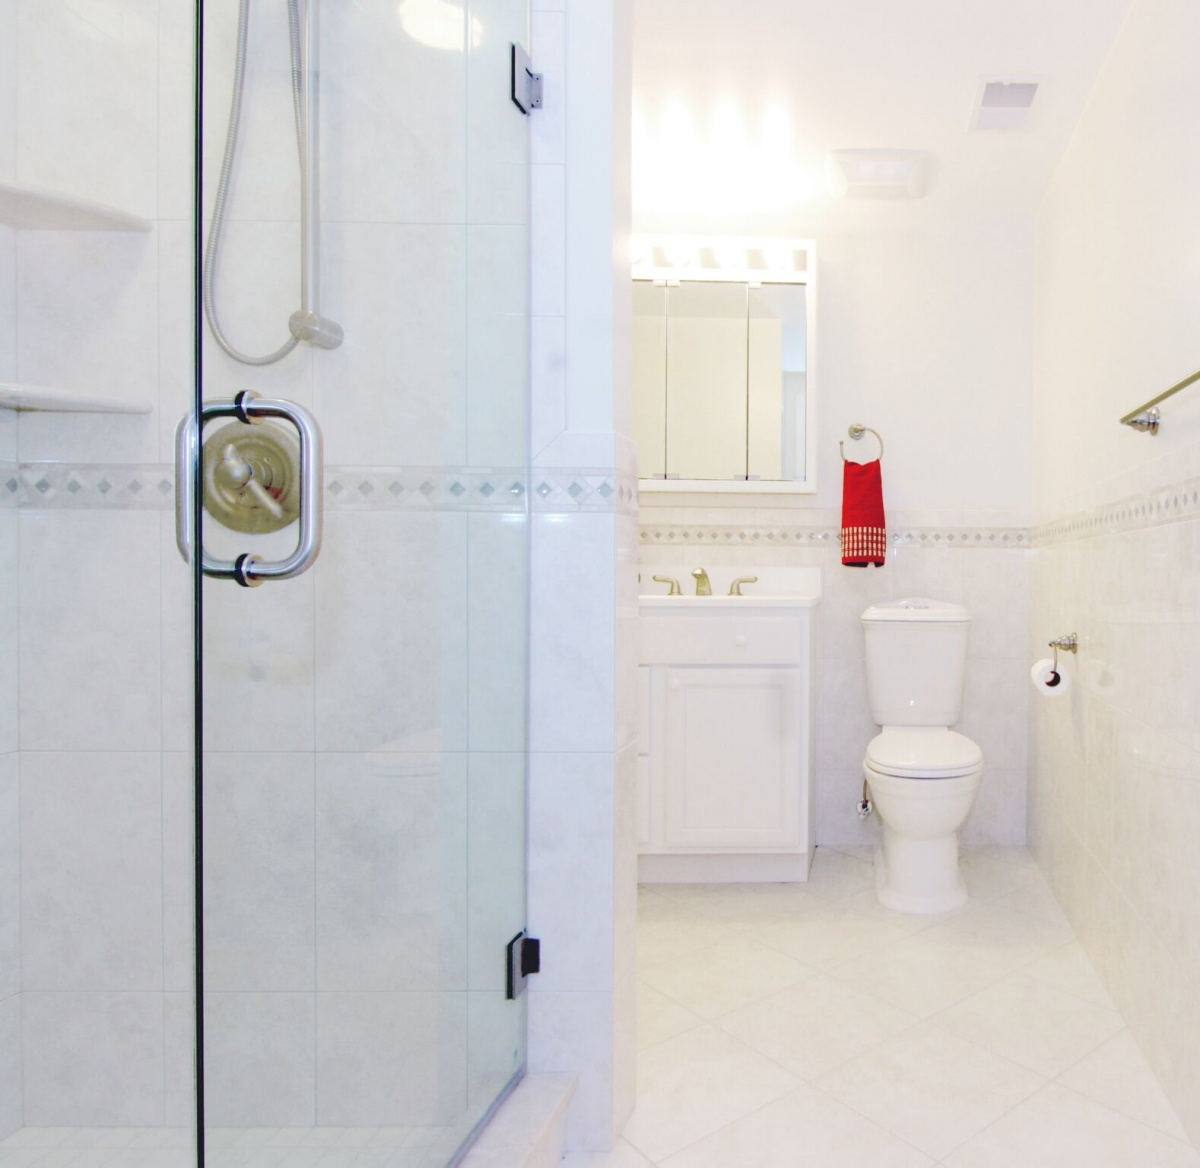 Tips For Planning Your Next Bathroom Remodel Mergen Home Remodeling - Bathroom remodel help